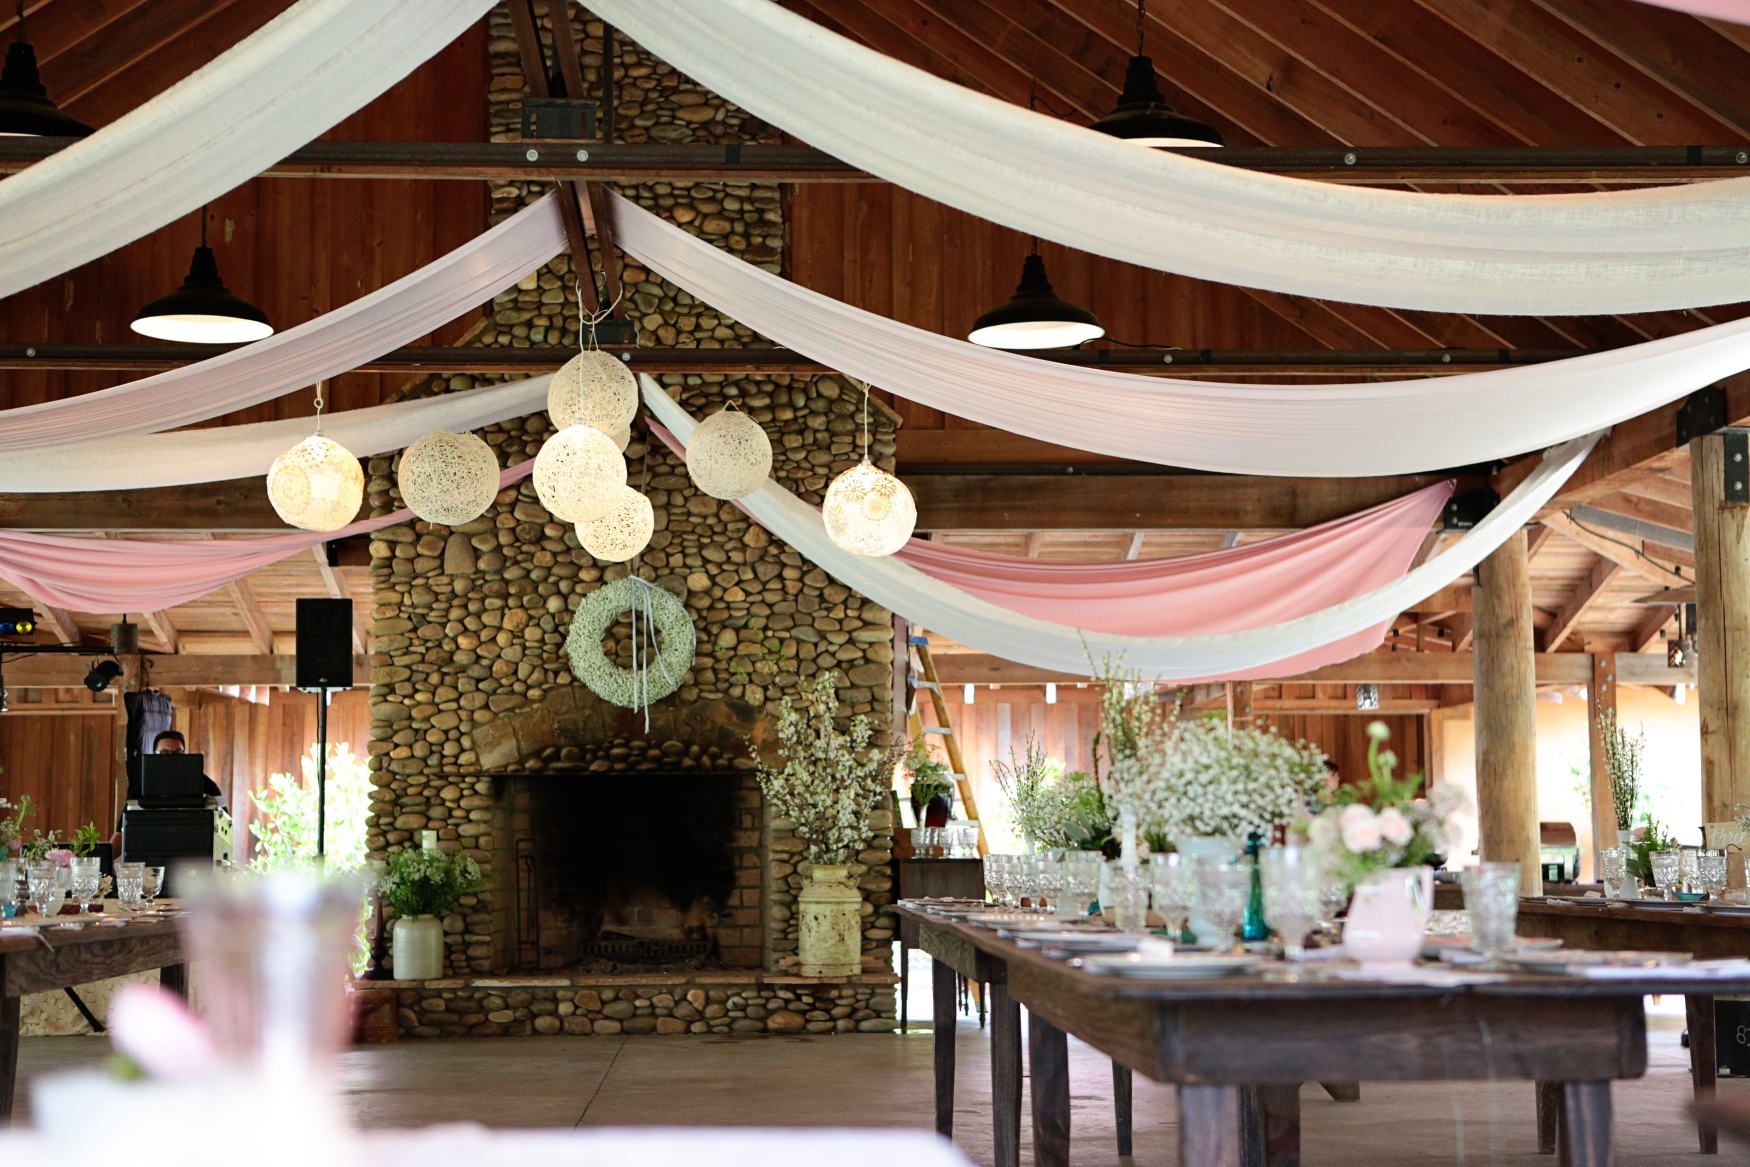 These globes gave the venue the feel of having its own blush moons (click for link).